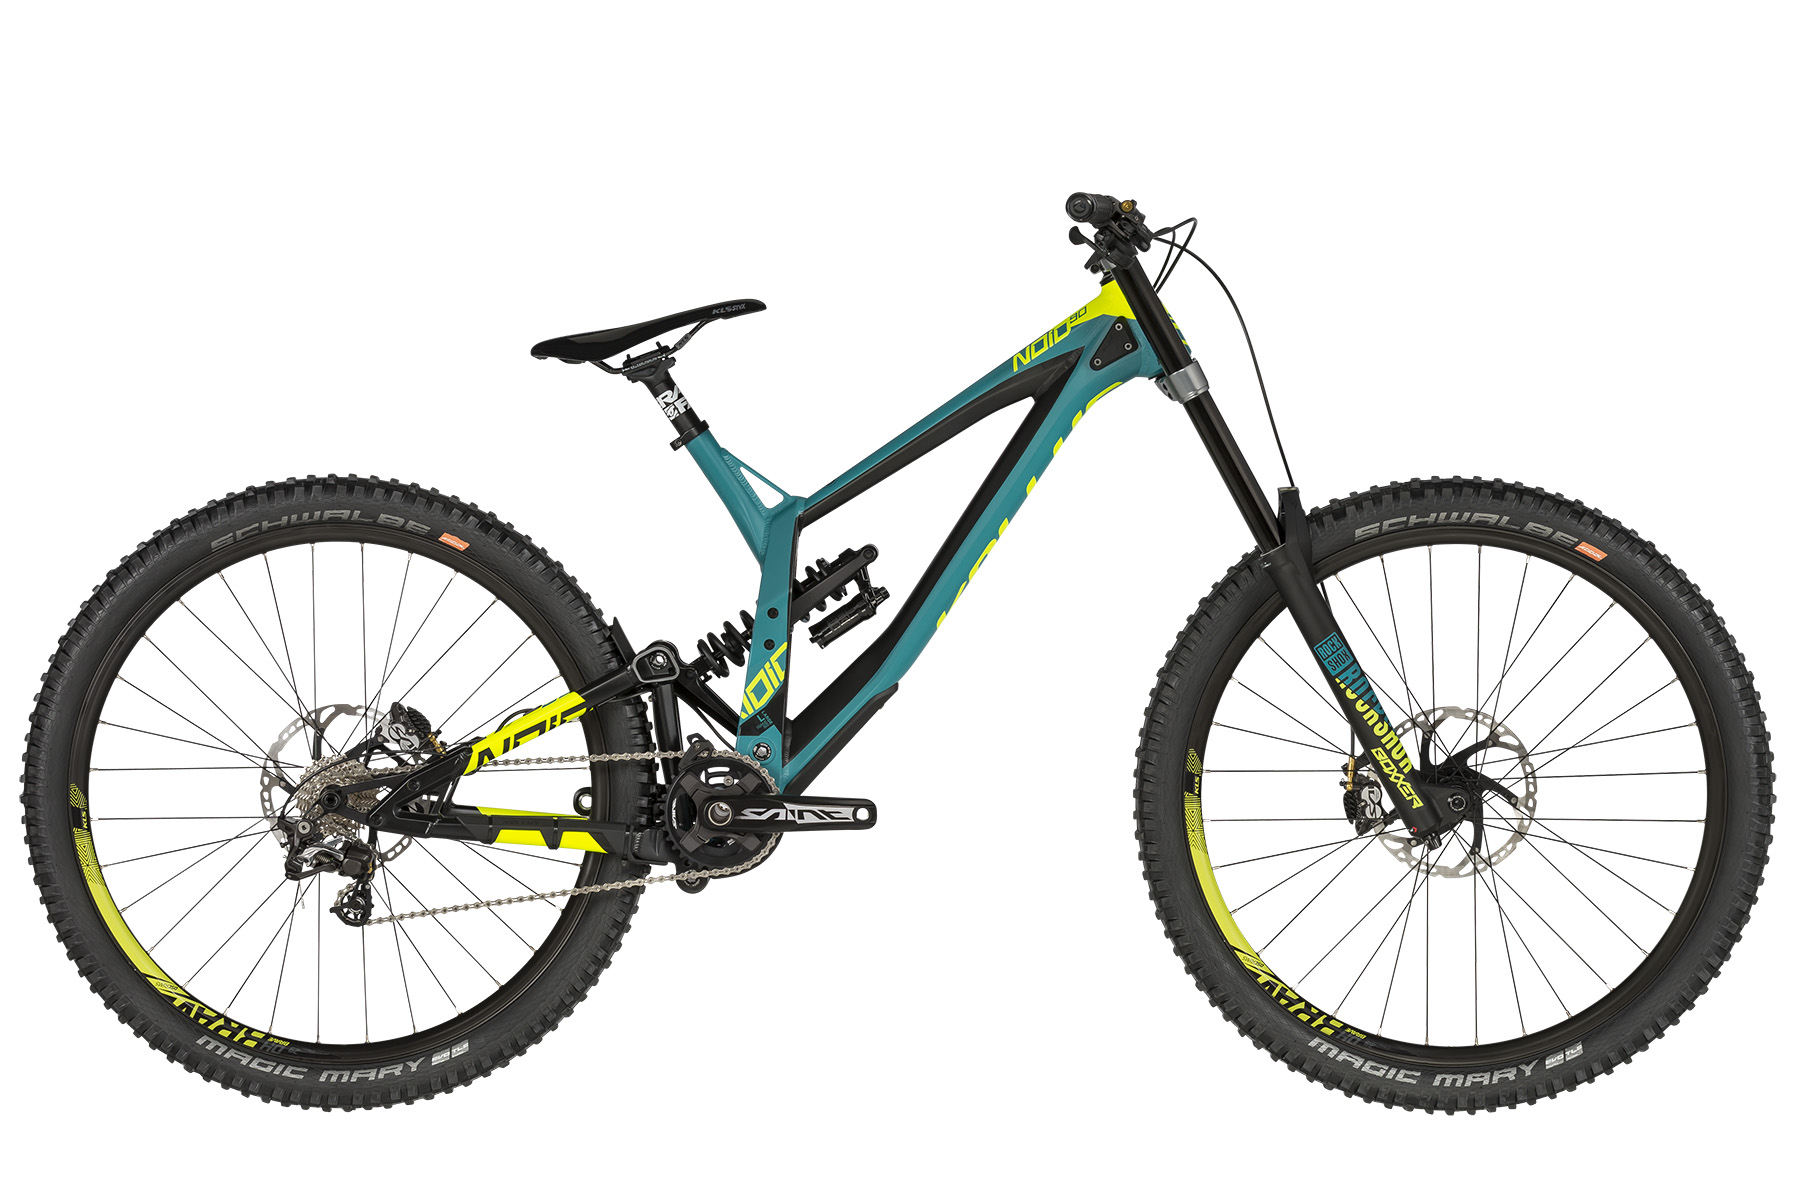 "<strong>Bicicleta full suspension </strong>cu telescop fata ROCK SHOX Boxxer World Cup DebonAir (29) Boost, 200mm si telescop spate Rock Shox Super Deluxe Coil RC / Rapid Recovery (250x75mm).</p><p><strong>Bicicleta downhill </strong>cu echipare Shimano Saint si roti de 29"".</p><p><strong>frame</strong> KELLYS Gravity DH 29 / Think Link suspension system, 205mm rear travel, internal routing, ISCG 05, 12x150mm thru axle<br /><strong>frame size</strong> L<br /><strong>fork</strong> ROCK SHOX Boxxer World Cup DebonAir (29) Boost, 200mm, Charger Damper 2 RC2 / Maxle Stealth 20mm thru axle<br /><strong>rear shock</strong> Rock Shox Super Deluxe Coil RC / Rapid Recovery (250x75mm)<br /><strong>head parts</strong> FSA 1.5 integrated<br /><strong>b.b.parts</strong> SHIMANO Press-Fit BB71-41A<br /><strong>crankset</strong> SHIMANO Saint M825 Hollowtech II (34) - length 165mm<br /><strong>shifters</strong> SHIMANO Zee SL-M640 Rapidfire Plus (rear)<br /><strong>f/derailleur</strong> chain guide MOZARTT HXR, ISCG 05<br /><strong>r/derailleur</strong> SHIMANO Saint M820 (direct mount)<br /><strong>speed</strong> 10<br /><strong>cassette sprocket</strong> SHIMANO CS-HG500-10 (11-25)<br /><strong>chain</strong> KMC X10EL (102 links)<br /><strong>brakes</strong> SHIMANO Saint M820 Hydraulic Disc<br /><strong>brake rotors</strong> 203mm front / 203mm rear<br /><strong>brake levers</strong> SHIMANO Saint BL-M820<br /><strong>hubs</strong> NOVATEC DH Disc (20x110mm / 12x150mm / 32 holes)<br /><strong>thru axle</strong> ROCK SHOX Maxle Stealth 20x110mm front / Mr.CONTROL 12x150mm rear<br /><strong>rims</strong> KLS Brave Disc 622x23 (32 holes)<br /><strong>spokes</strong> stainless steel black<br /><strong>tires</strong> SCHWALBE Magic Mary 60-584 (27.5x2.35) SnakeSkin, Tubeless Easy, ADDIX Soft, folding<br /><strong>stem</strong> RACE FACE Atlas DM - direct mount / bar bore 31.8mm<br /><strong>handlebar</strong> RACE FACE Atlas RiseBar - diam 31.8mm / width 785mm<br /><strong>grips</strong> KLS Poison<br /><strong>seat post</strong> RACE FACE Chester - diam 30.9mm / length 325mm<br /><strong>saddle</strong> KLS Styx"